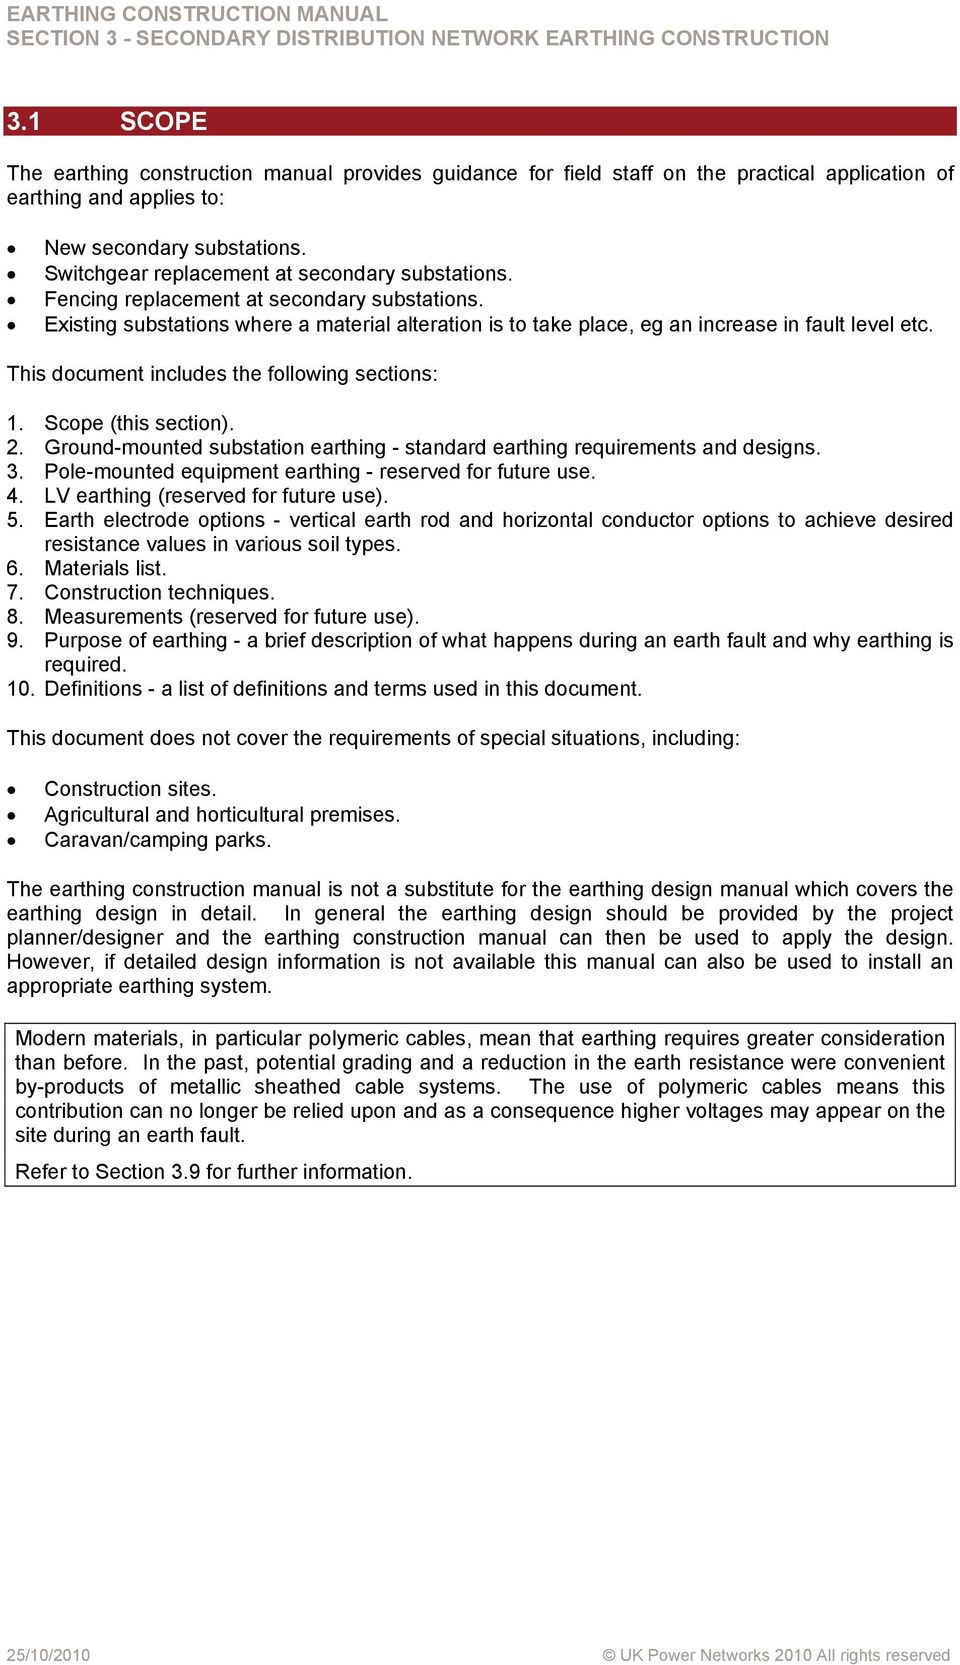 EARTHING CONSTRUCTION MANUAL SECTION 3 SECONDARY